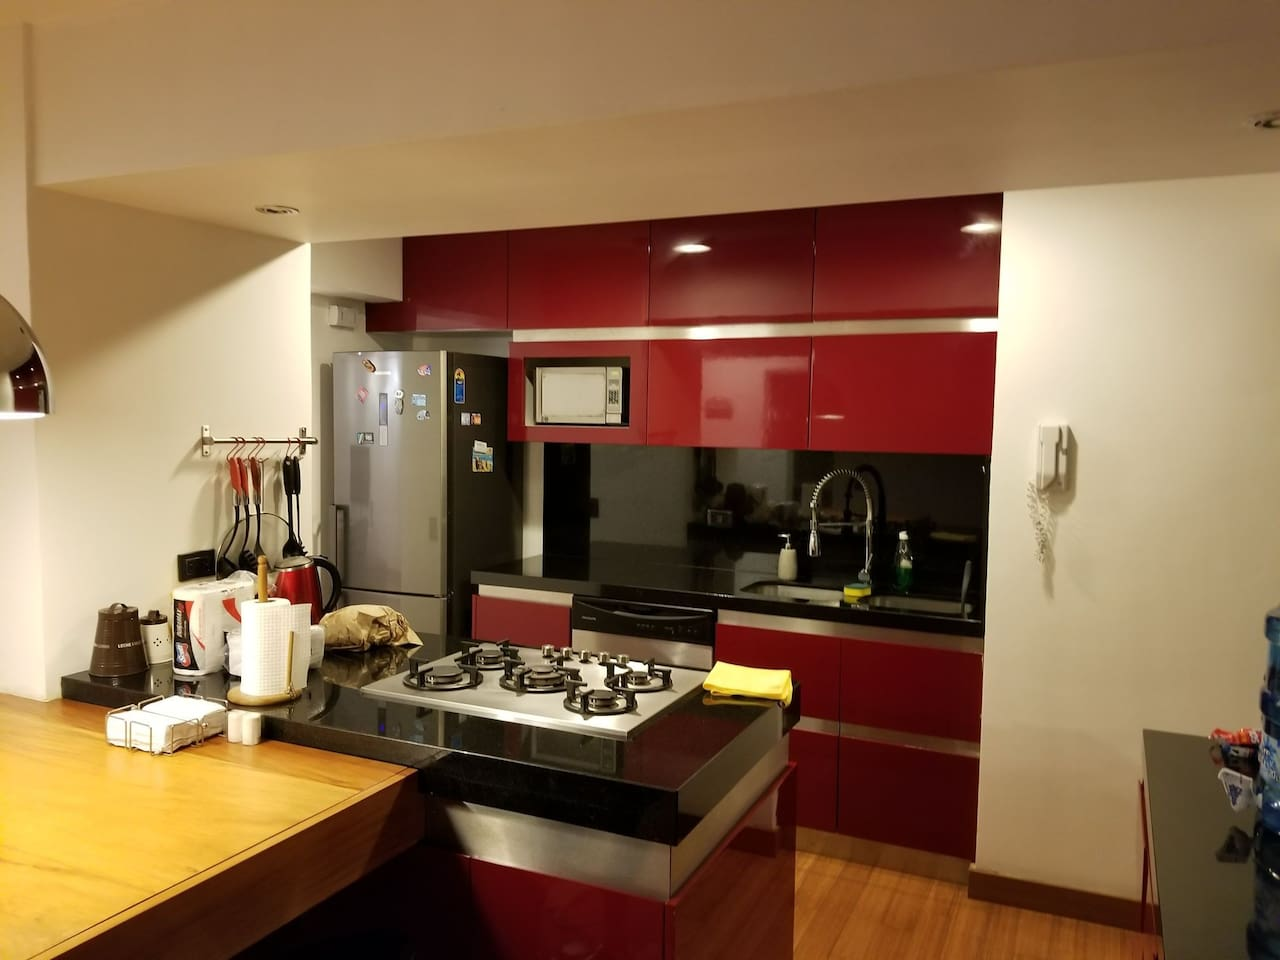 Full Aparment with Open Kitchen, 2 Bedroom, Balcony, Laundry Area and High Speed Internet